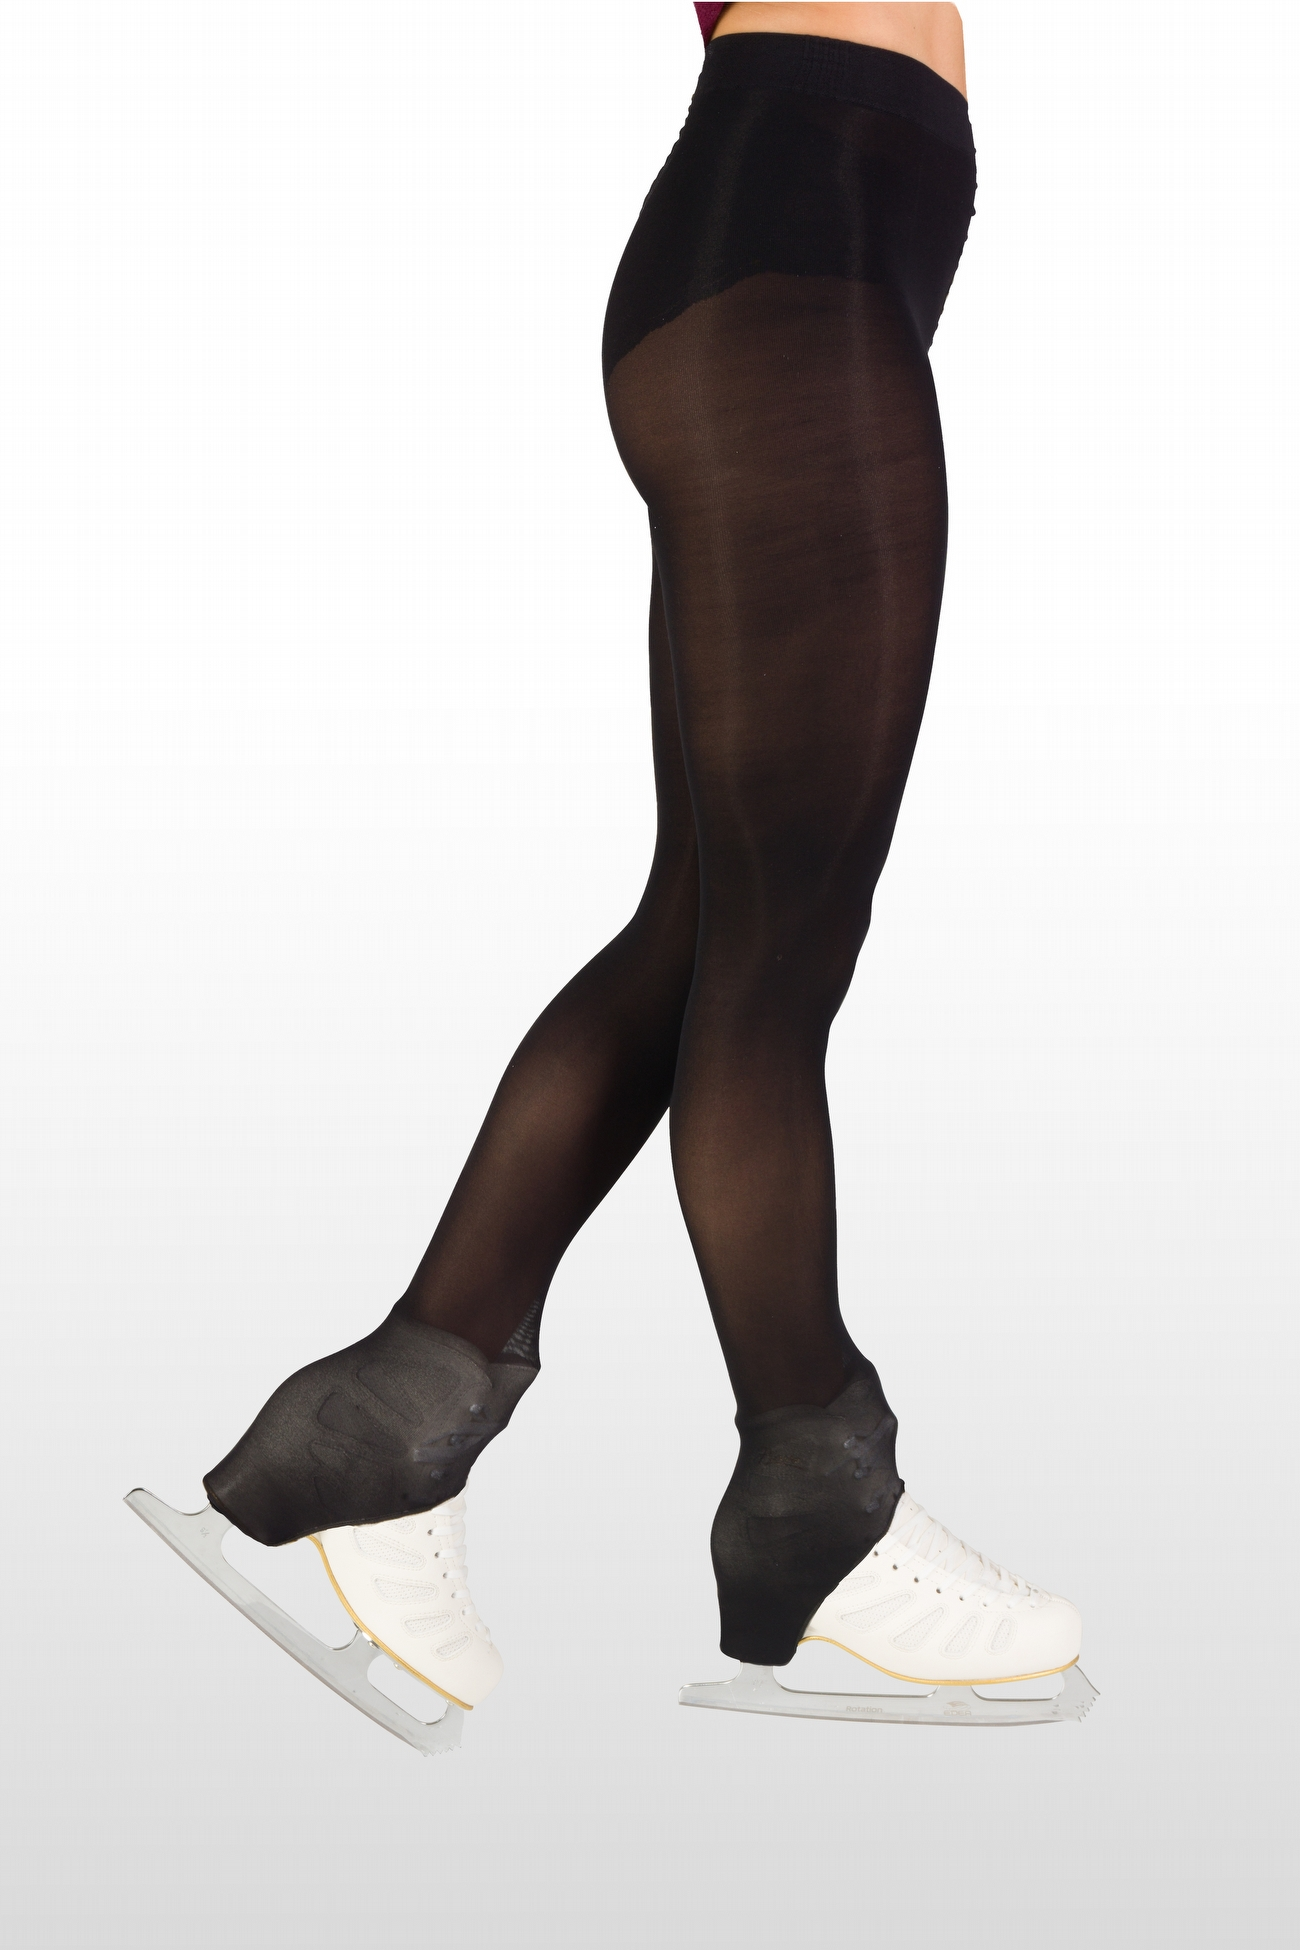 compra online Skating OVER THE HEEL TIGHTS 50 DEN